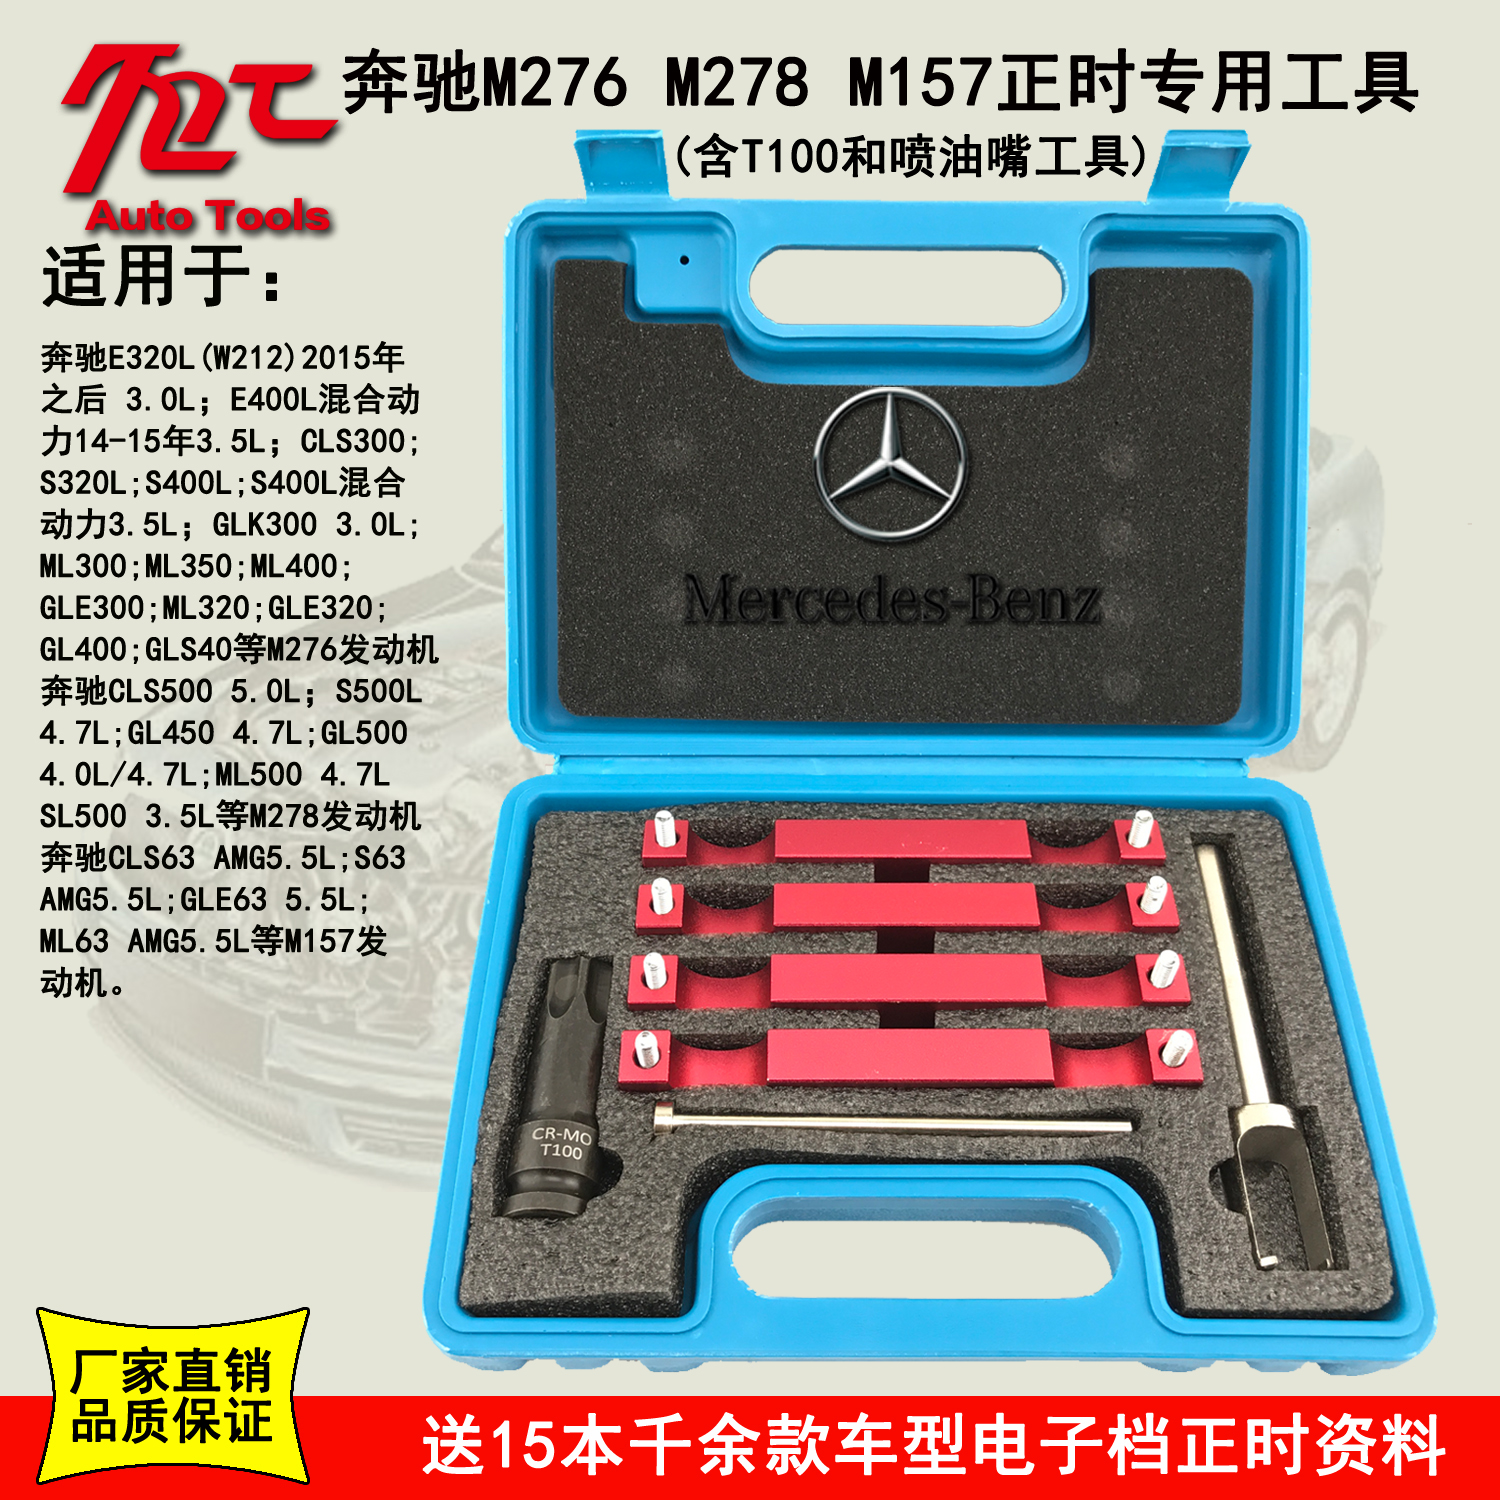 Mercedes-Benz M276 timing tools Mercedes-Benz S350 M278 M157 M276 camshaft  timing special tools